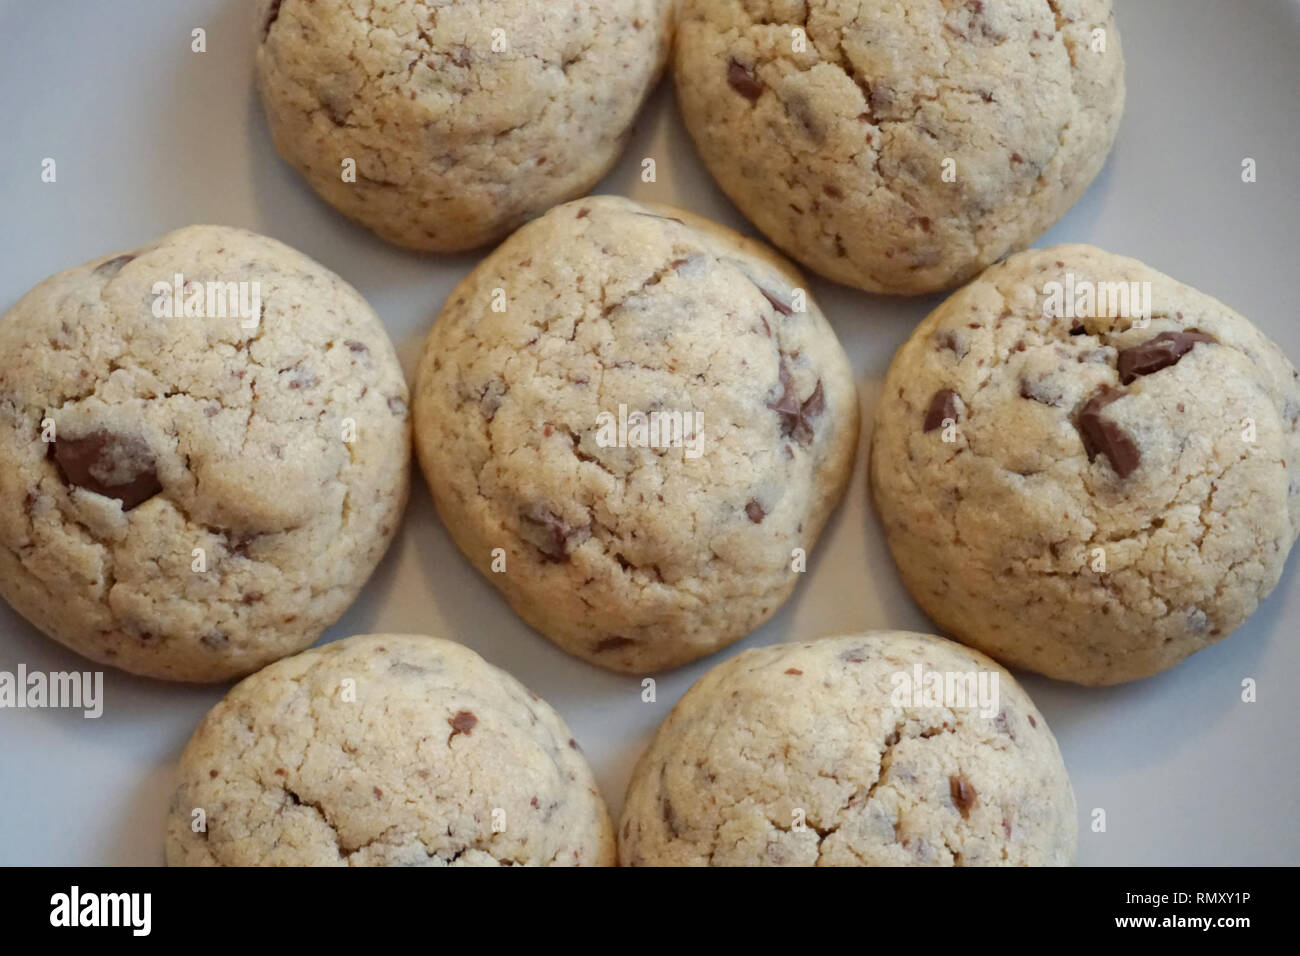 Baked tasty homemade butter cookies with pieces of dark chocolate, top view - Stock Image